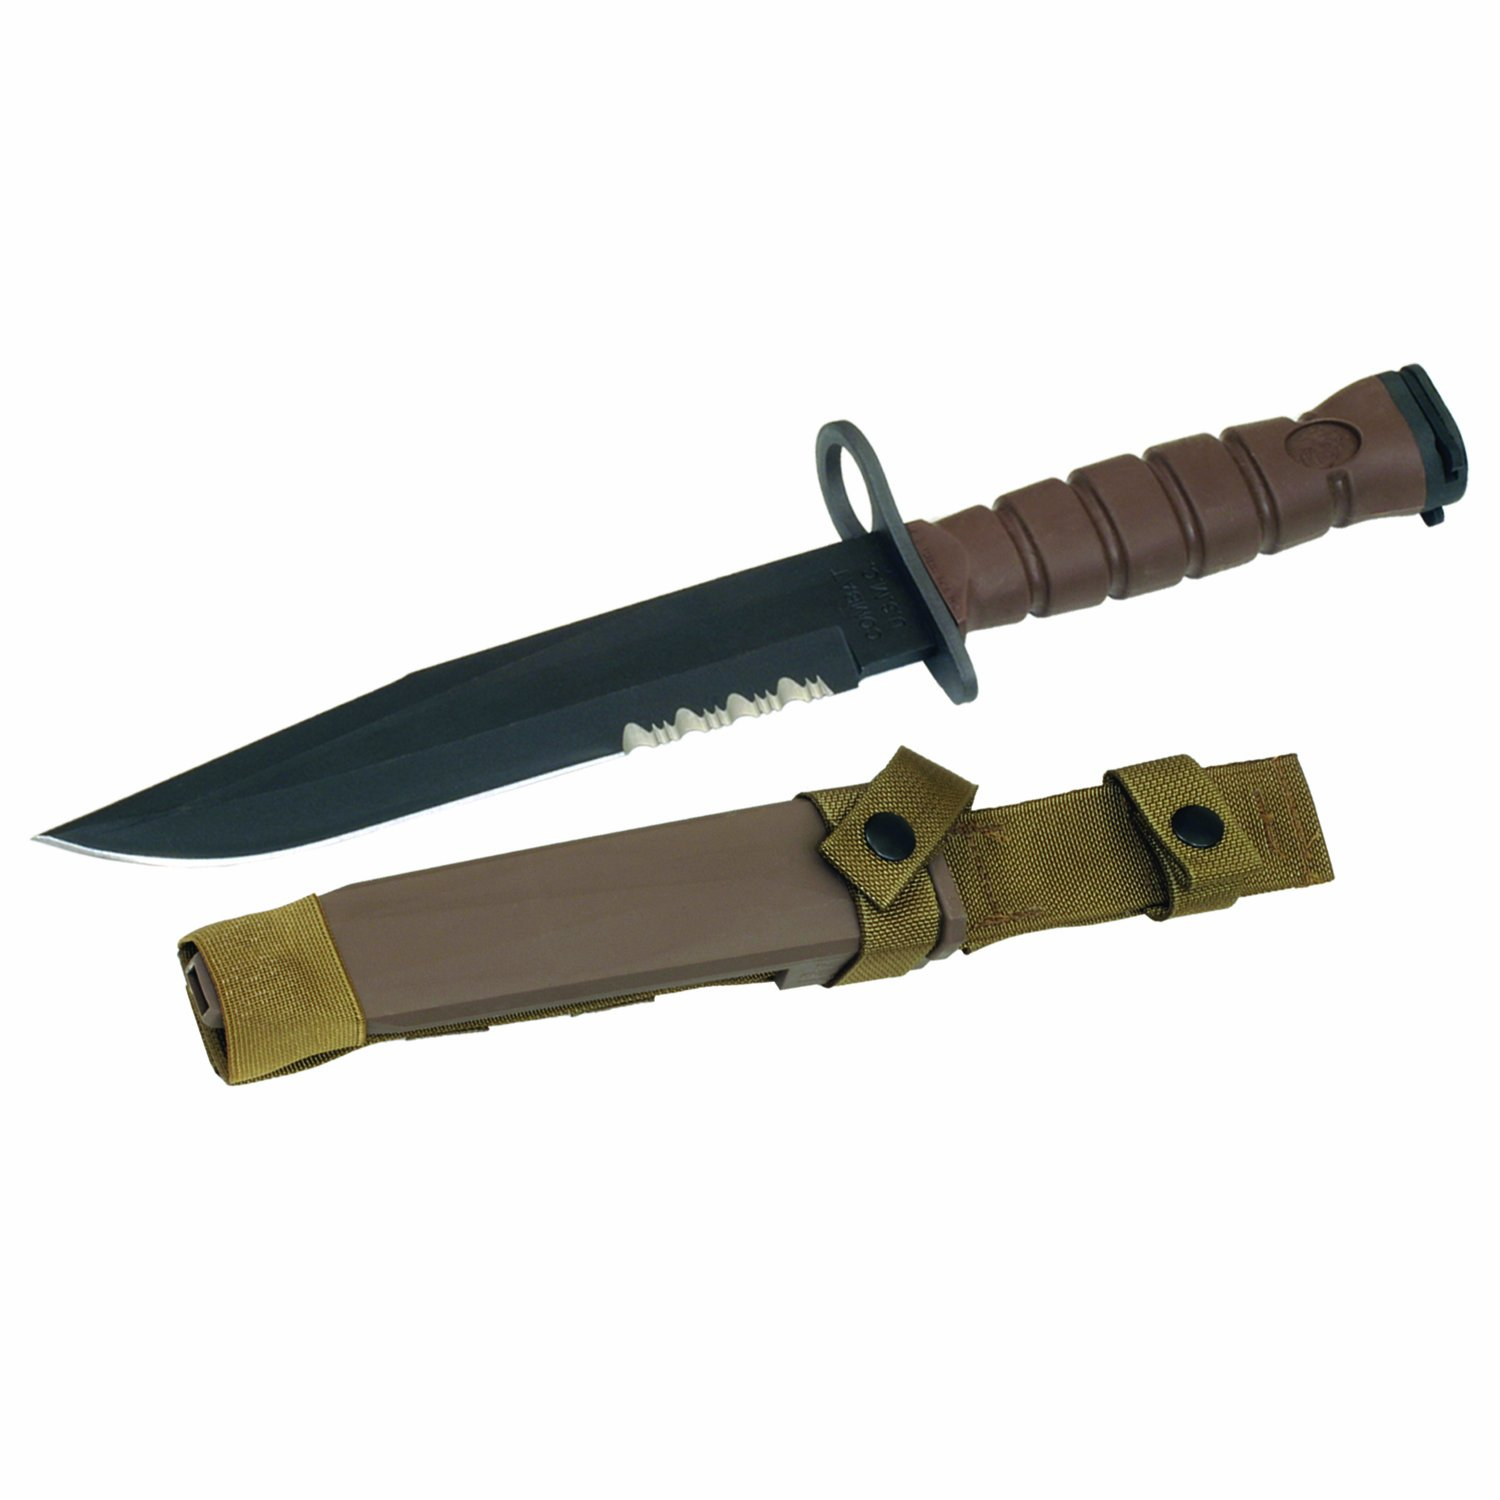 What knife do troops, Army Special Forces and SEALs use